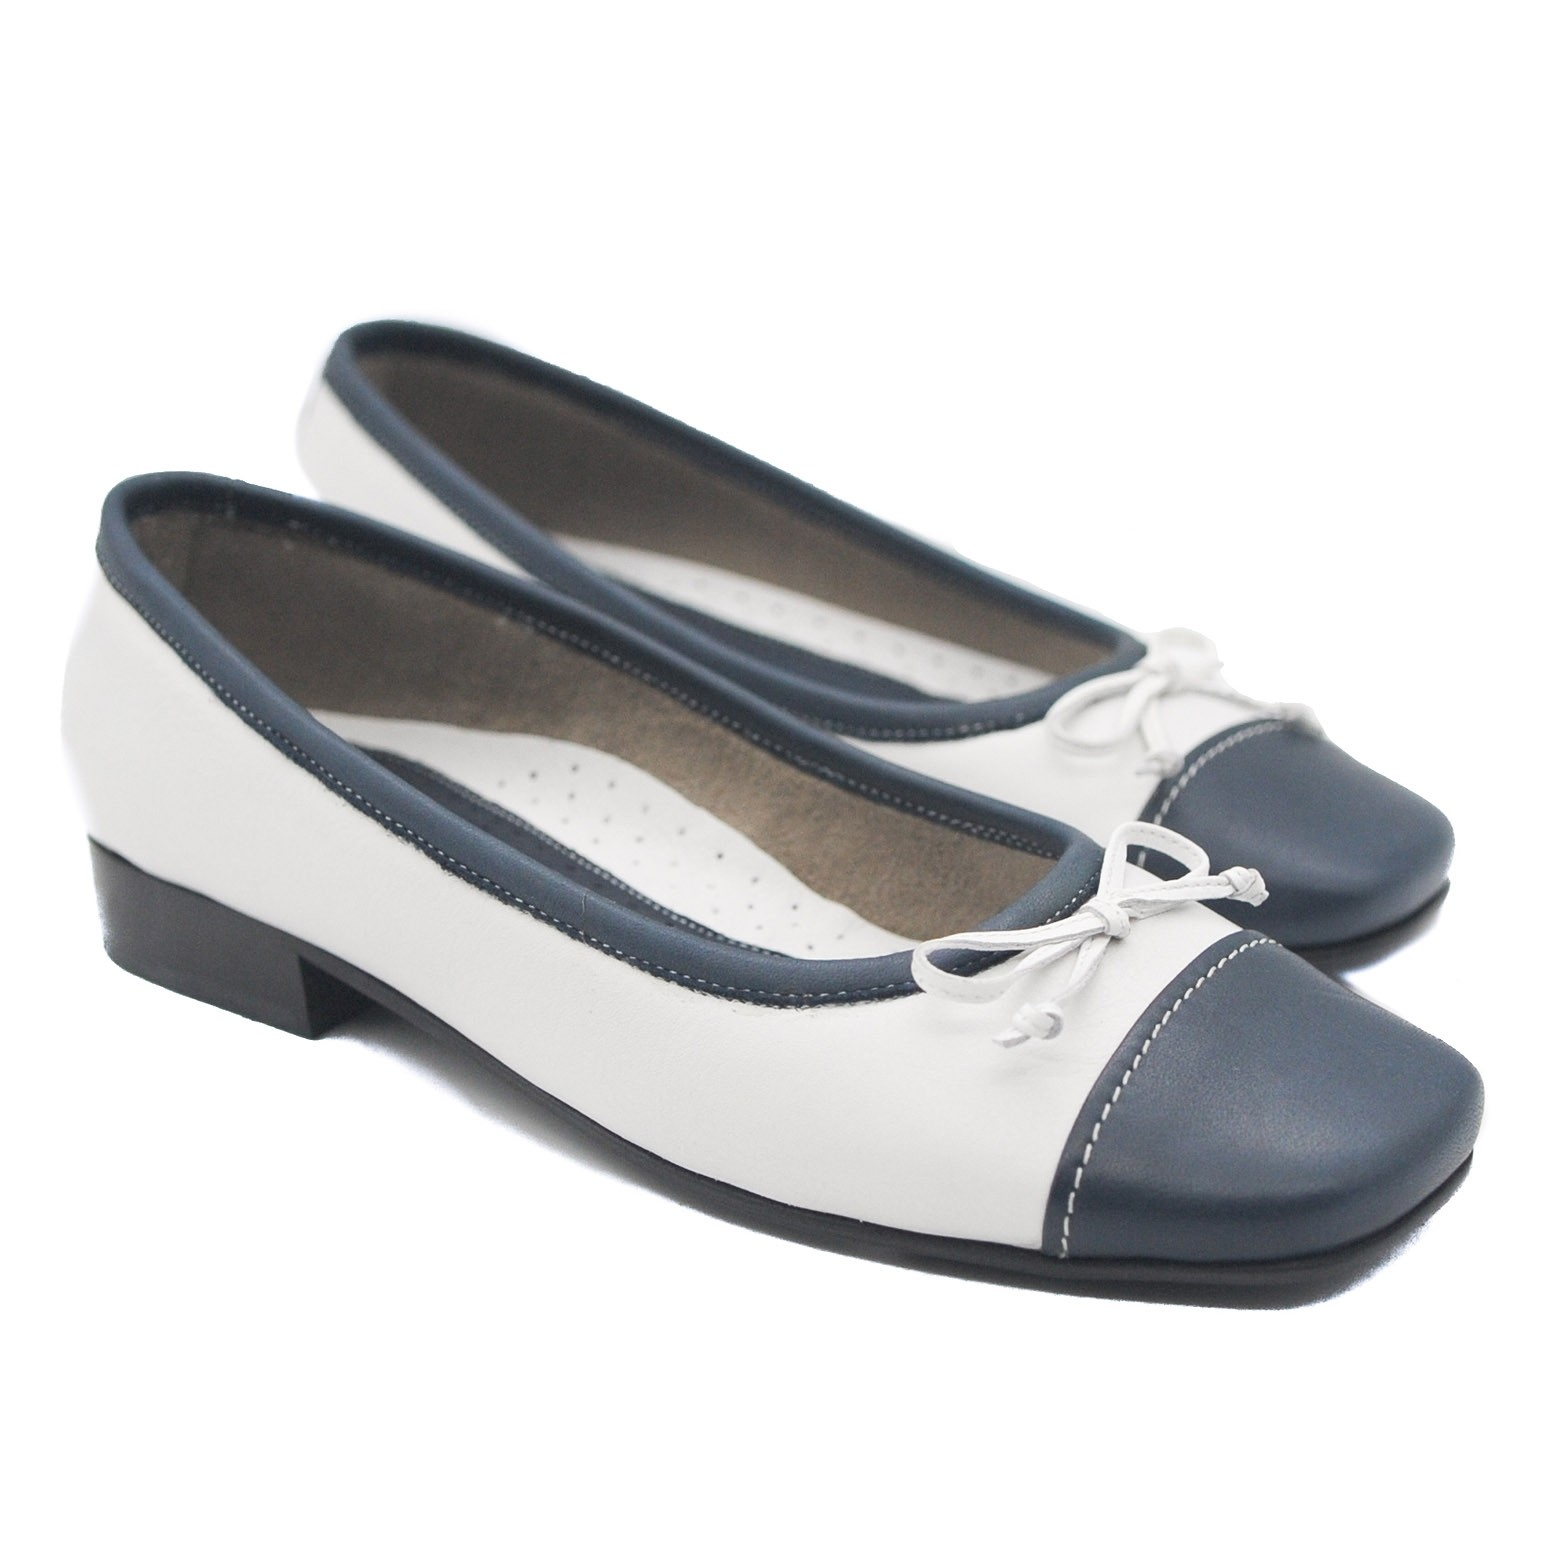 Navy and White Ballerina Slip-On Orthopedic Pumps for Ladies with Low Heel & Square Toe